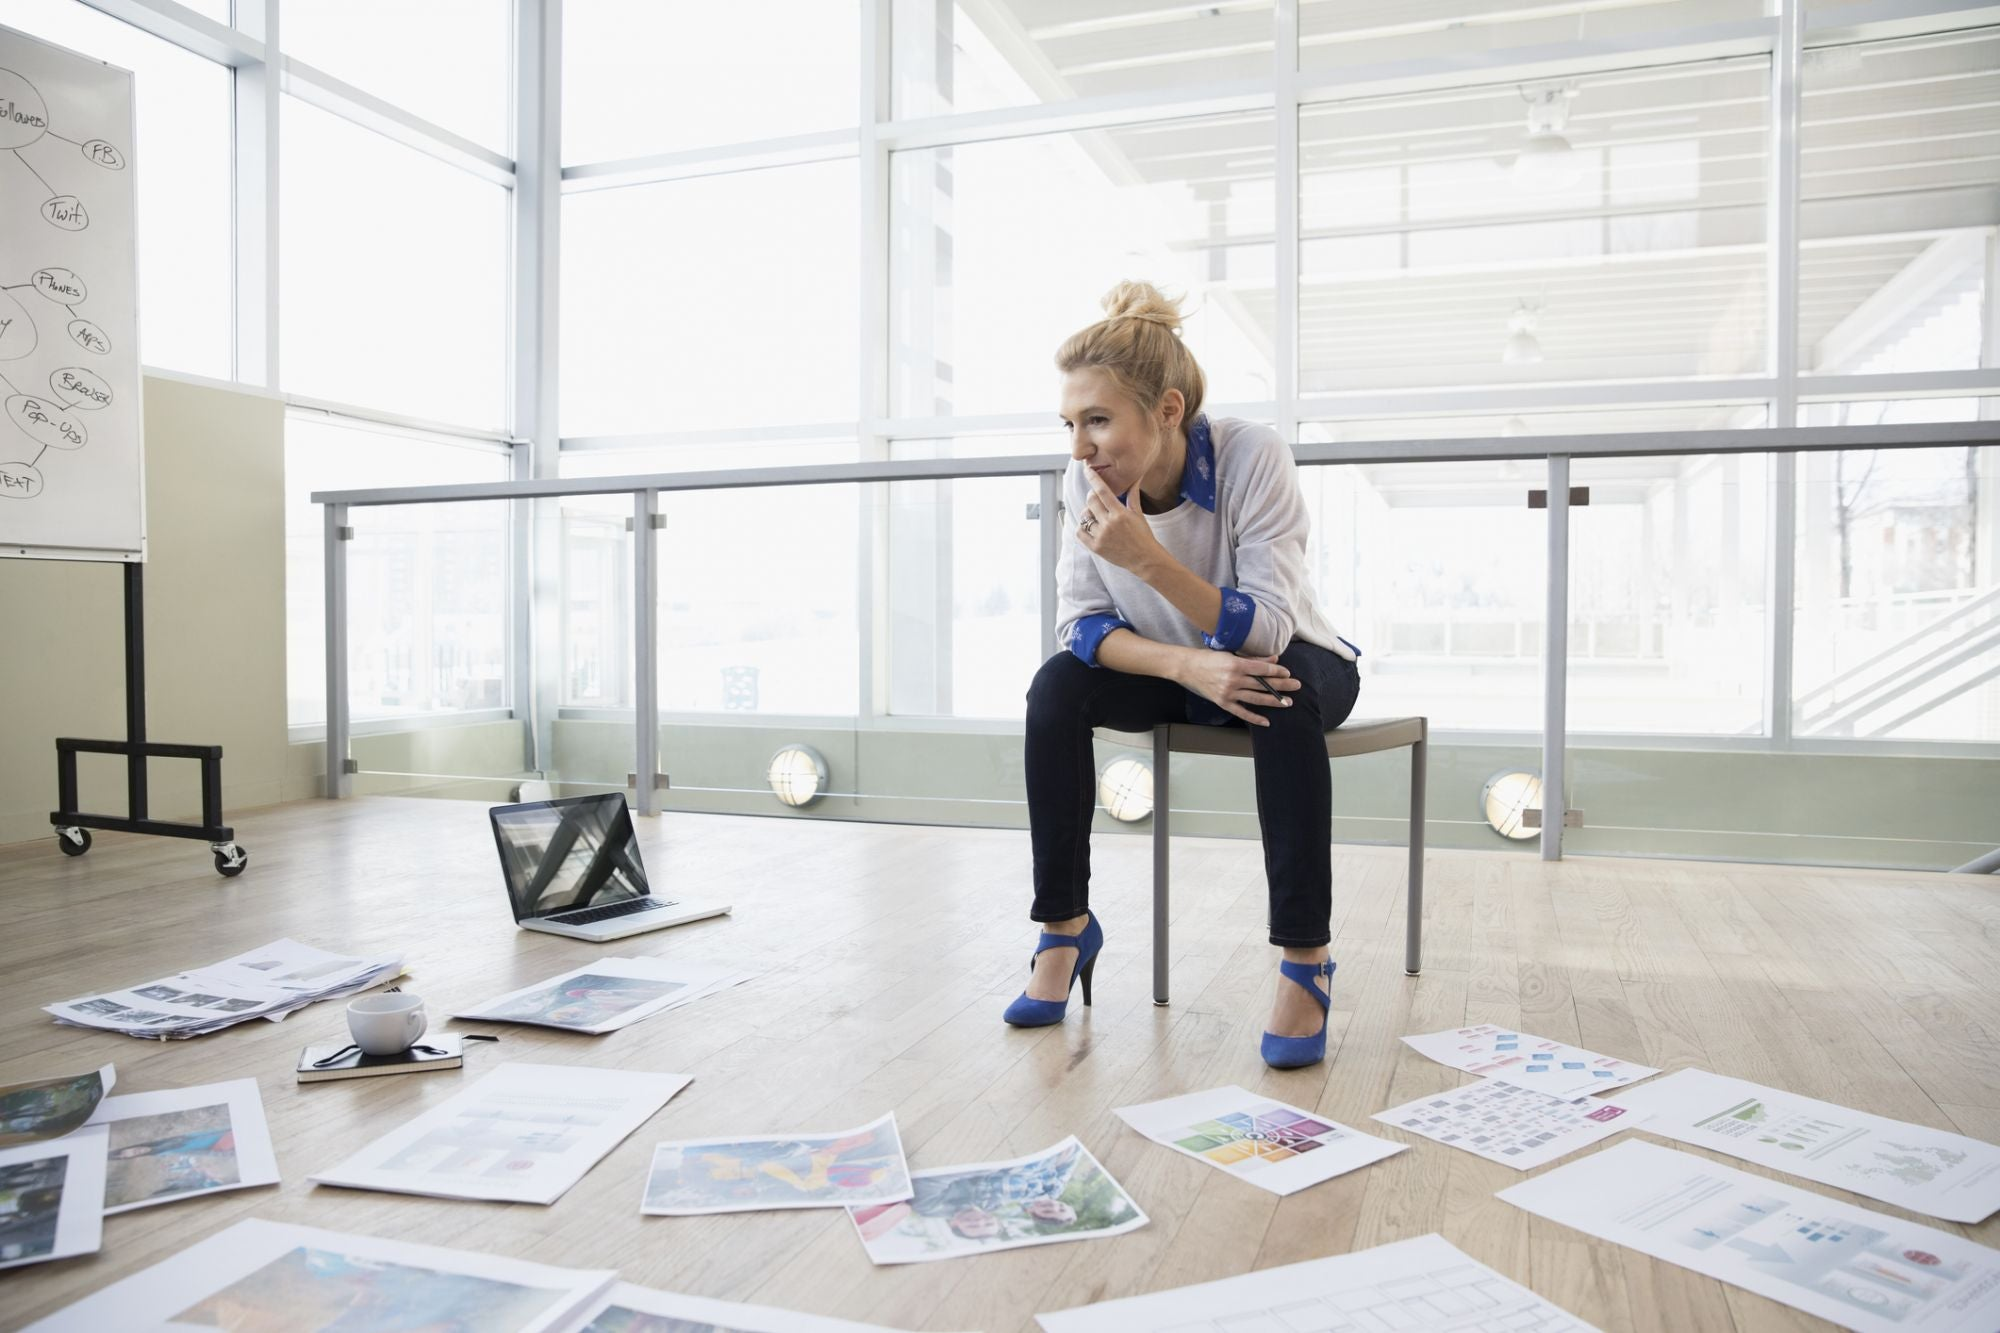 The 8 Habits of Highly Effective Entrepreneurs